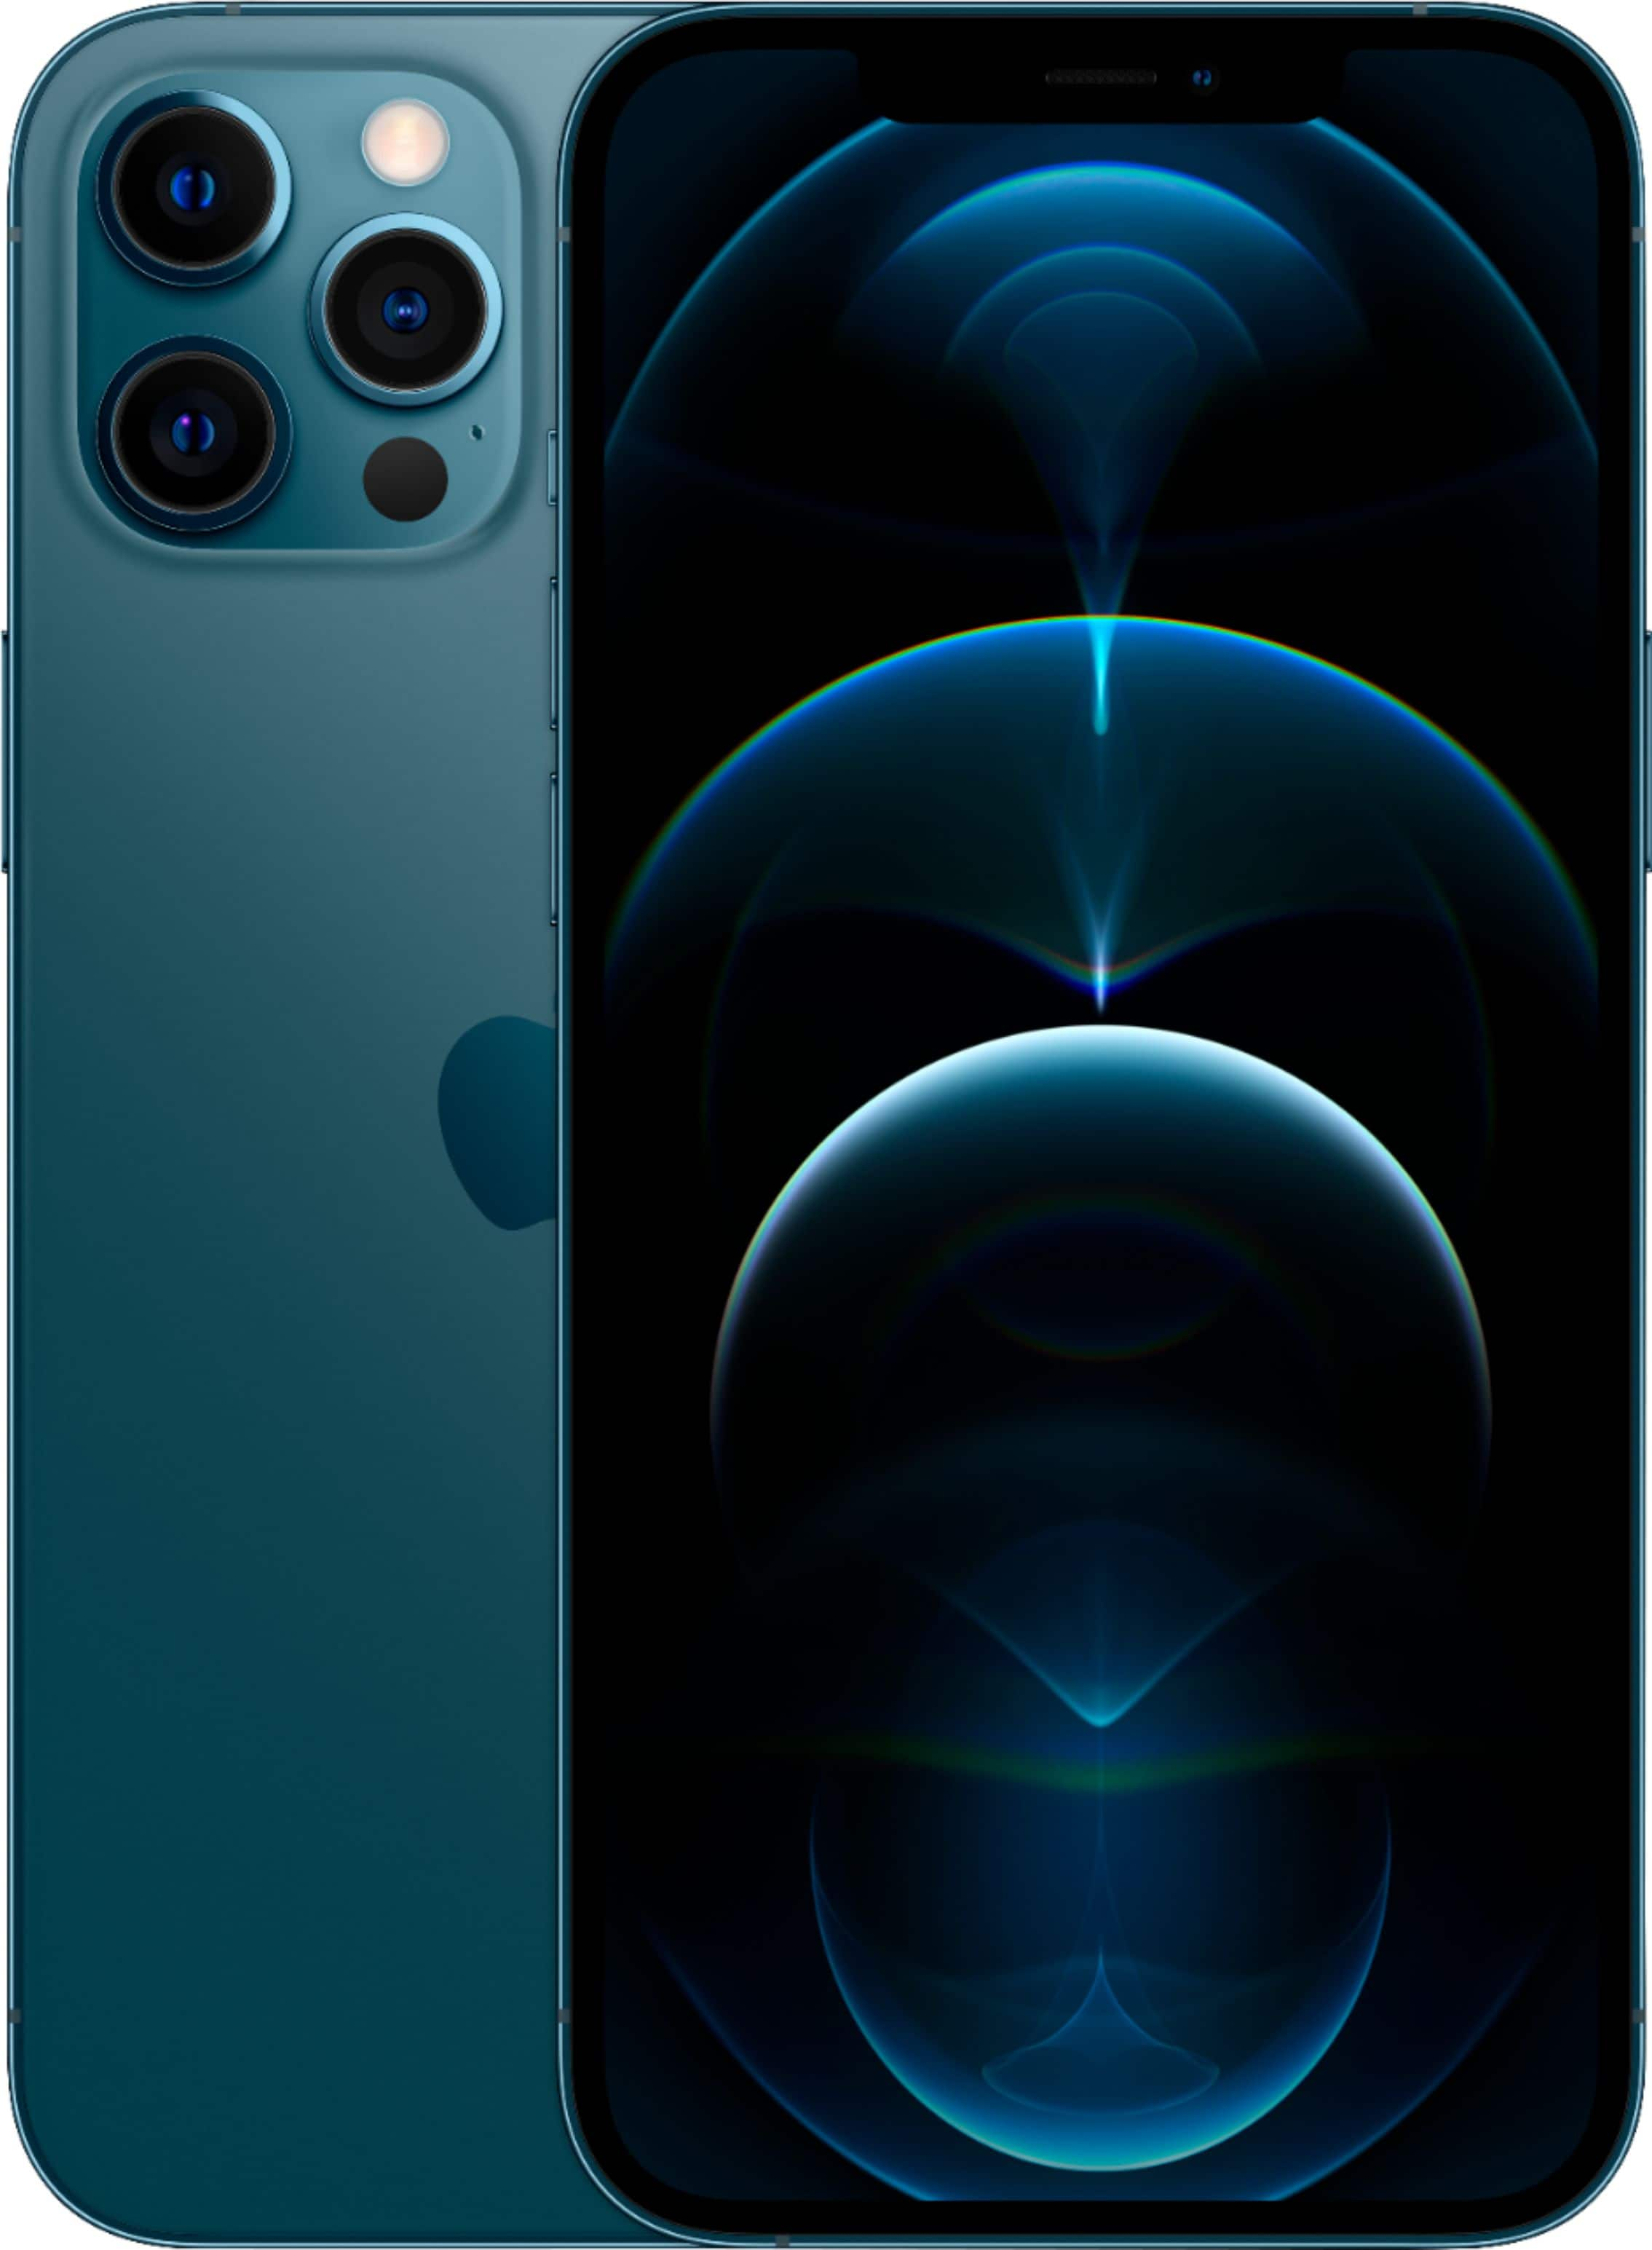 YMMV Verizon Wireless $579.99 trade in value for iPhone X with switch to unlimited and upgrade to iPhone 12/12 Pro